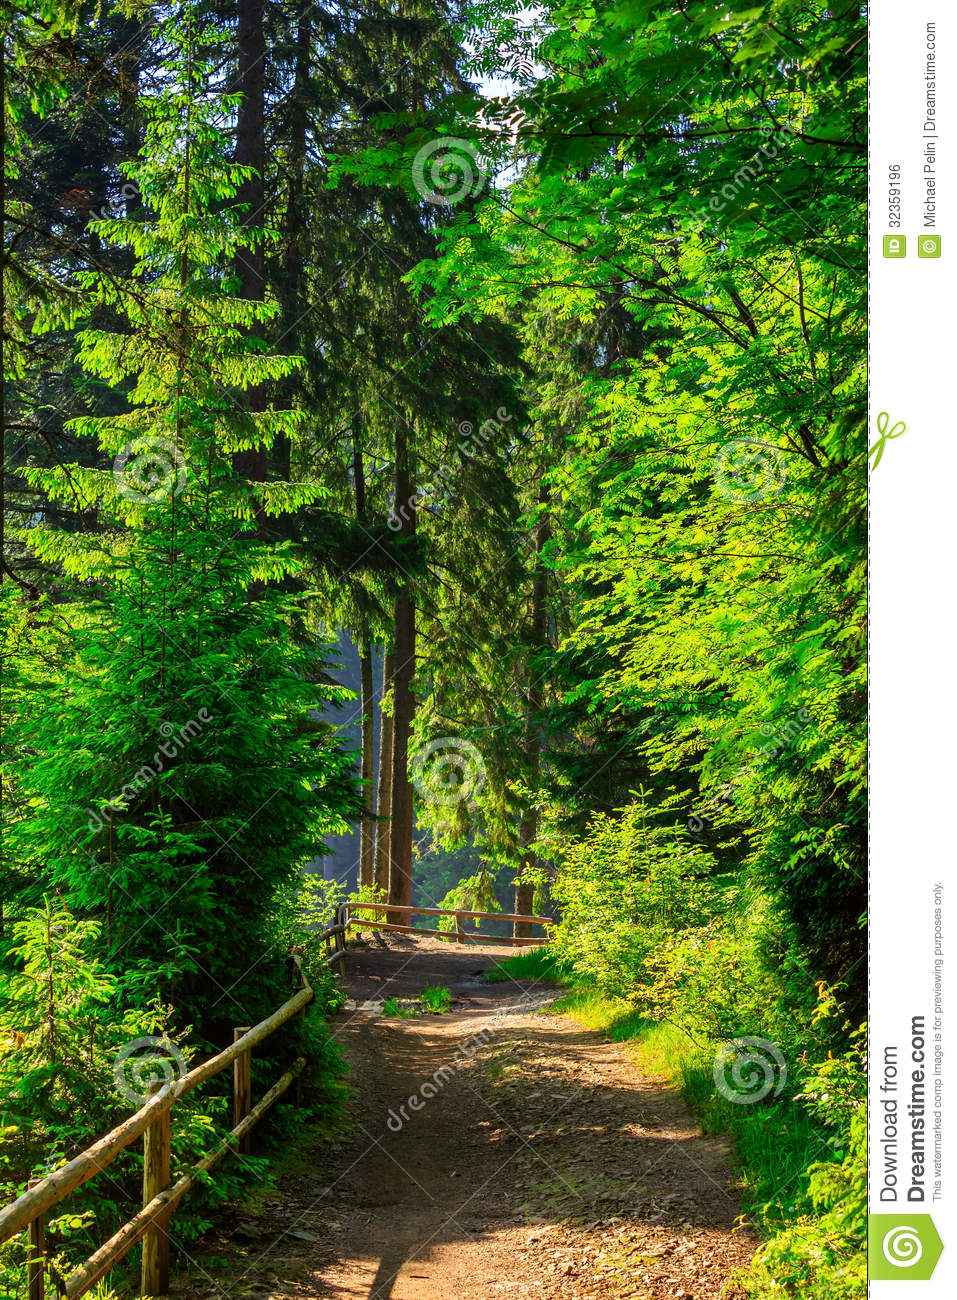 forest corridor with fence - photo #23